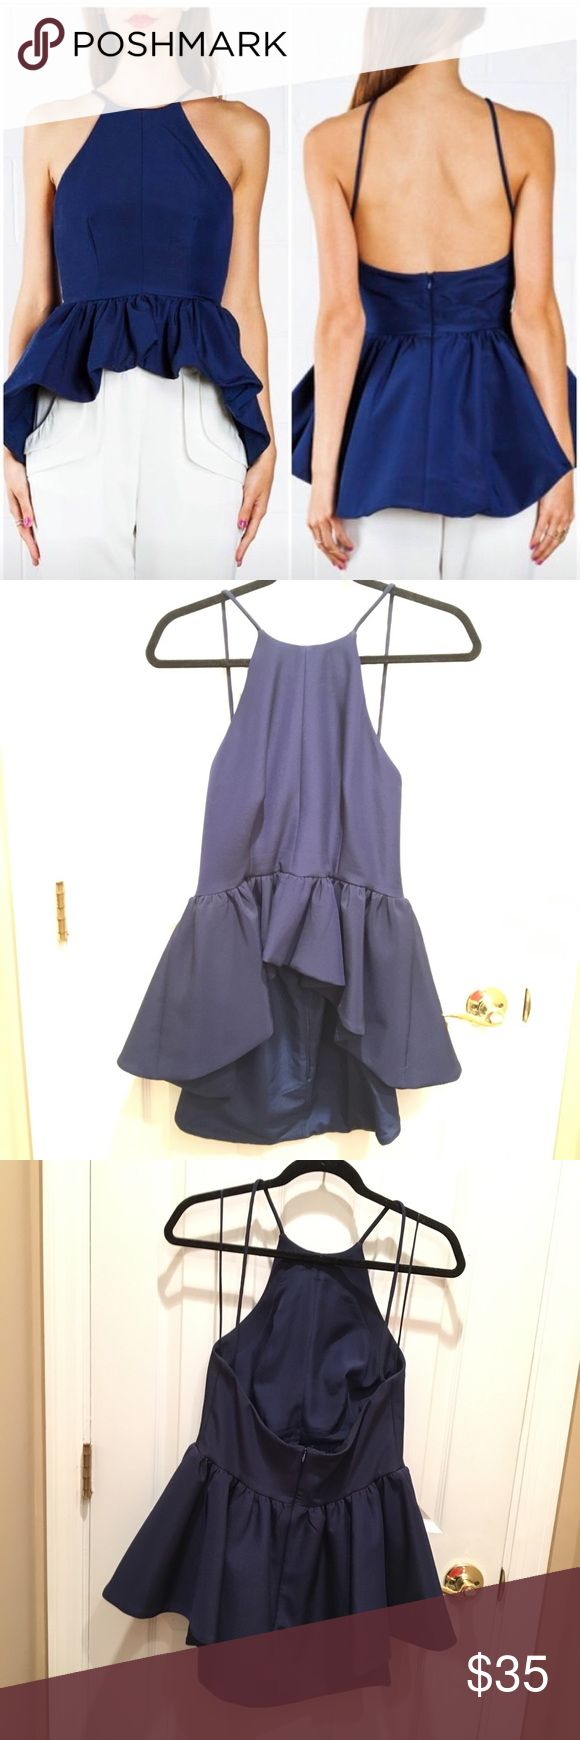 🎁FLASH SALE🎁CAMEO THE LABEL navy peplum top EUC Perfect condition Cameo AUS FASHION LABELS peplum top. Shorter in front longer in back, large peplum and open back. Just beautiful. Runs small. Worn maybe four times. Also have a dress that is the same style in my closet check it out! C/MEO Collective Tops Crop Tops